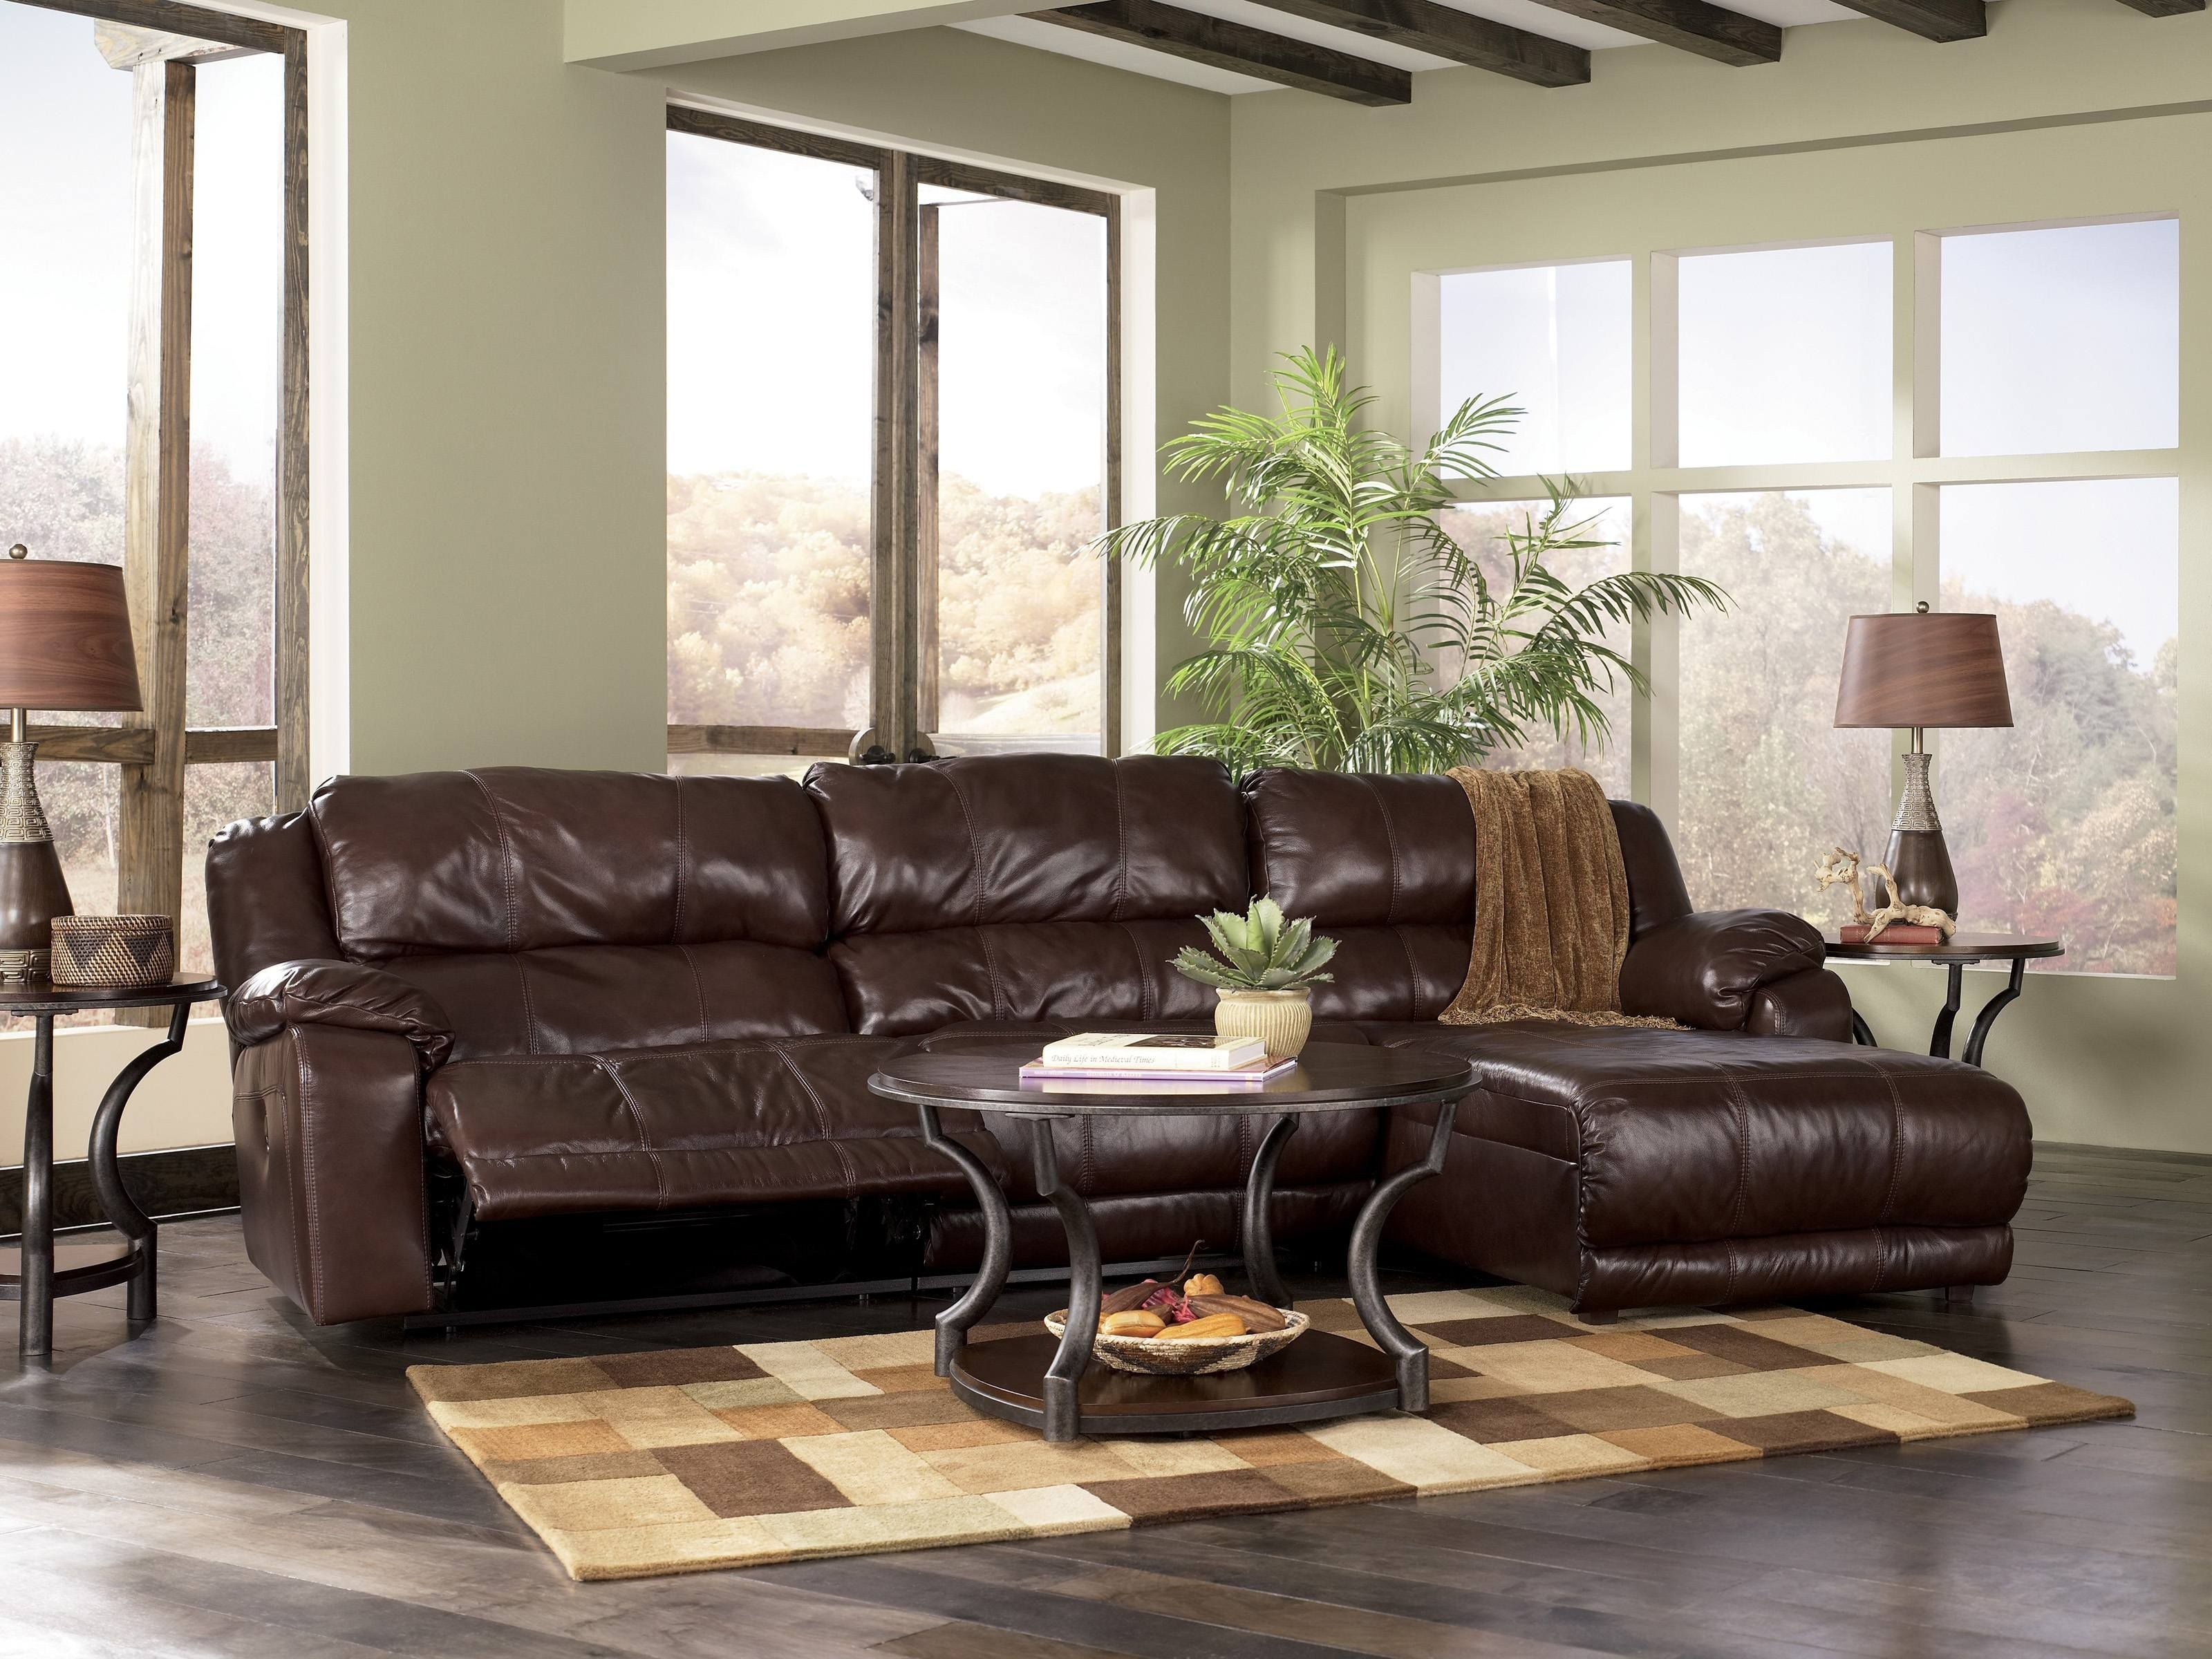 Sectional Sofas With Recliners | Johnson Leather Sofa With Recliner For Knoxville Tn Sectional Sofas (Image 10 of 10)